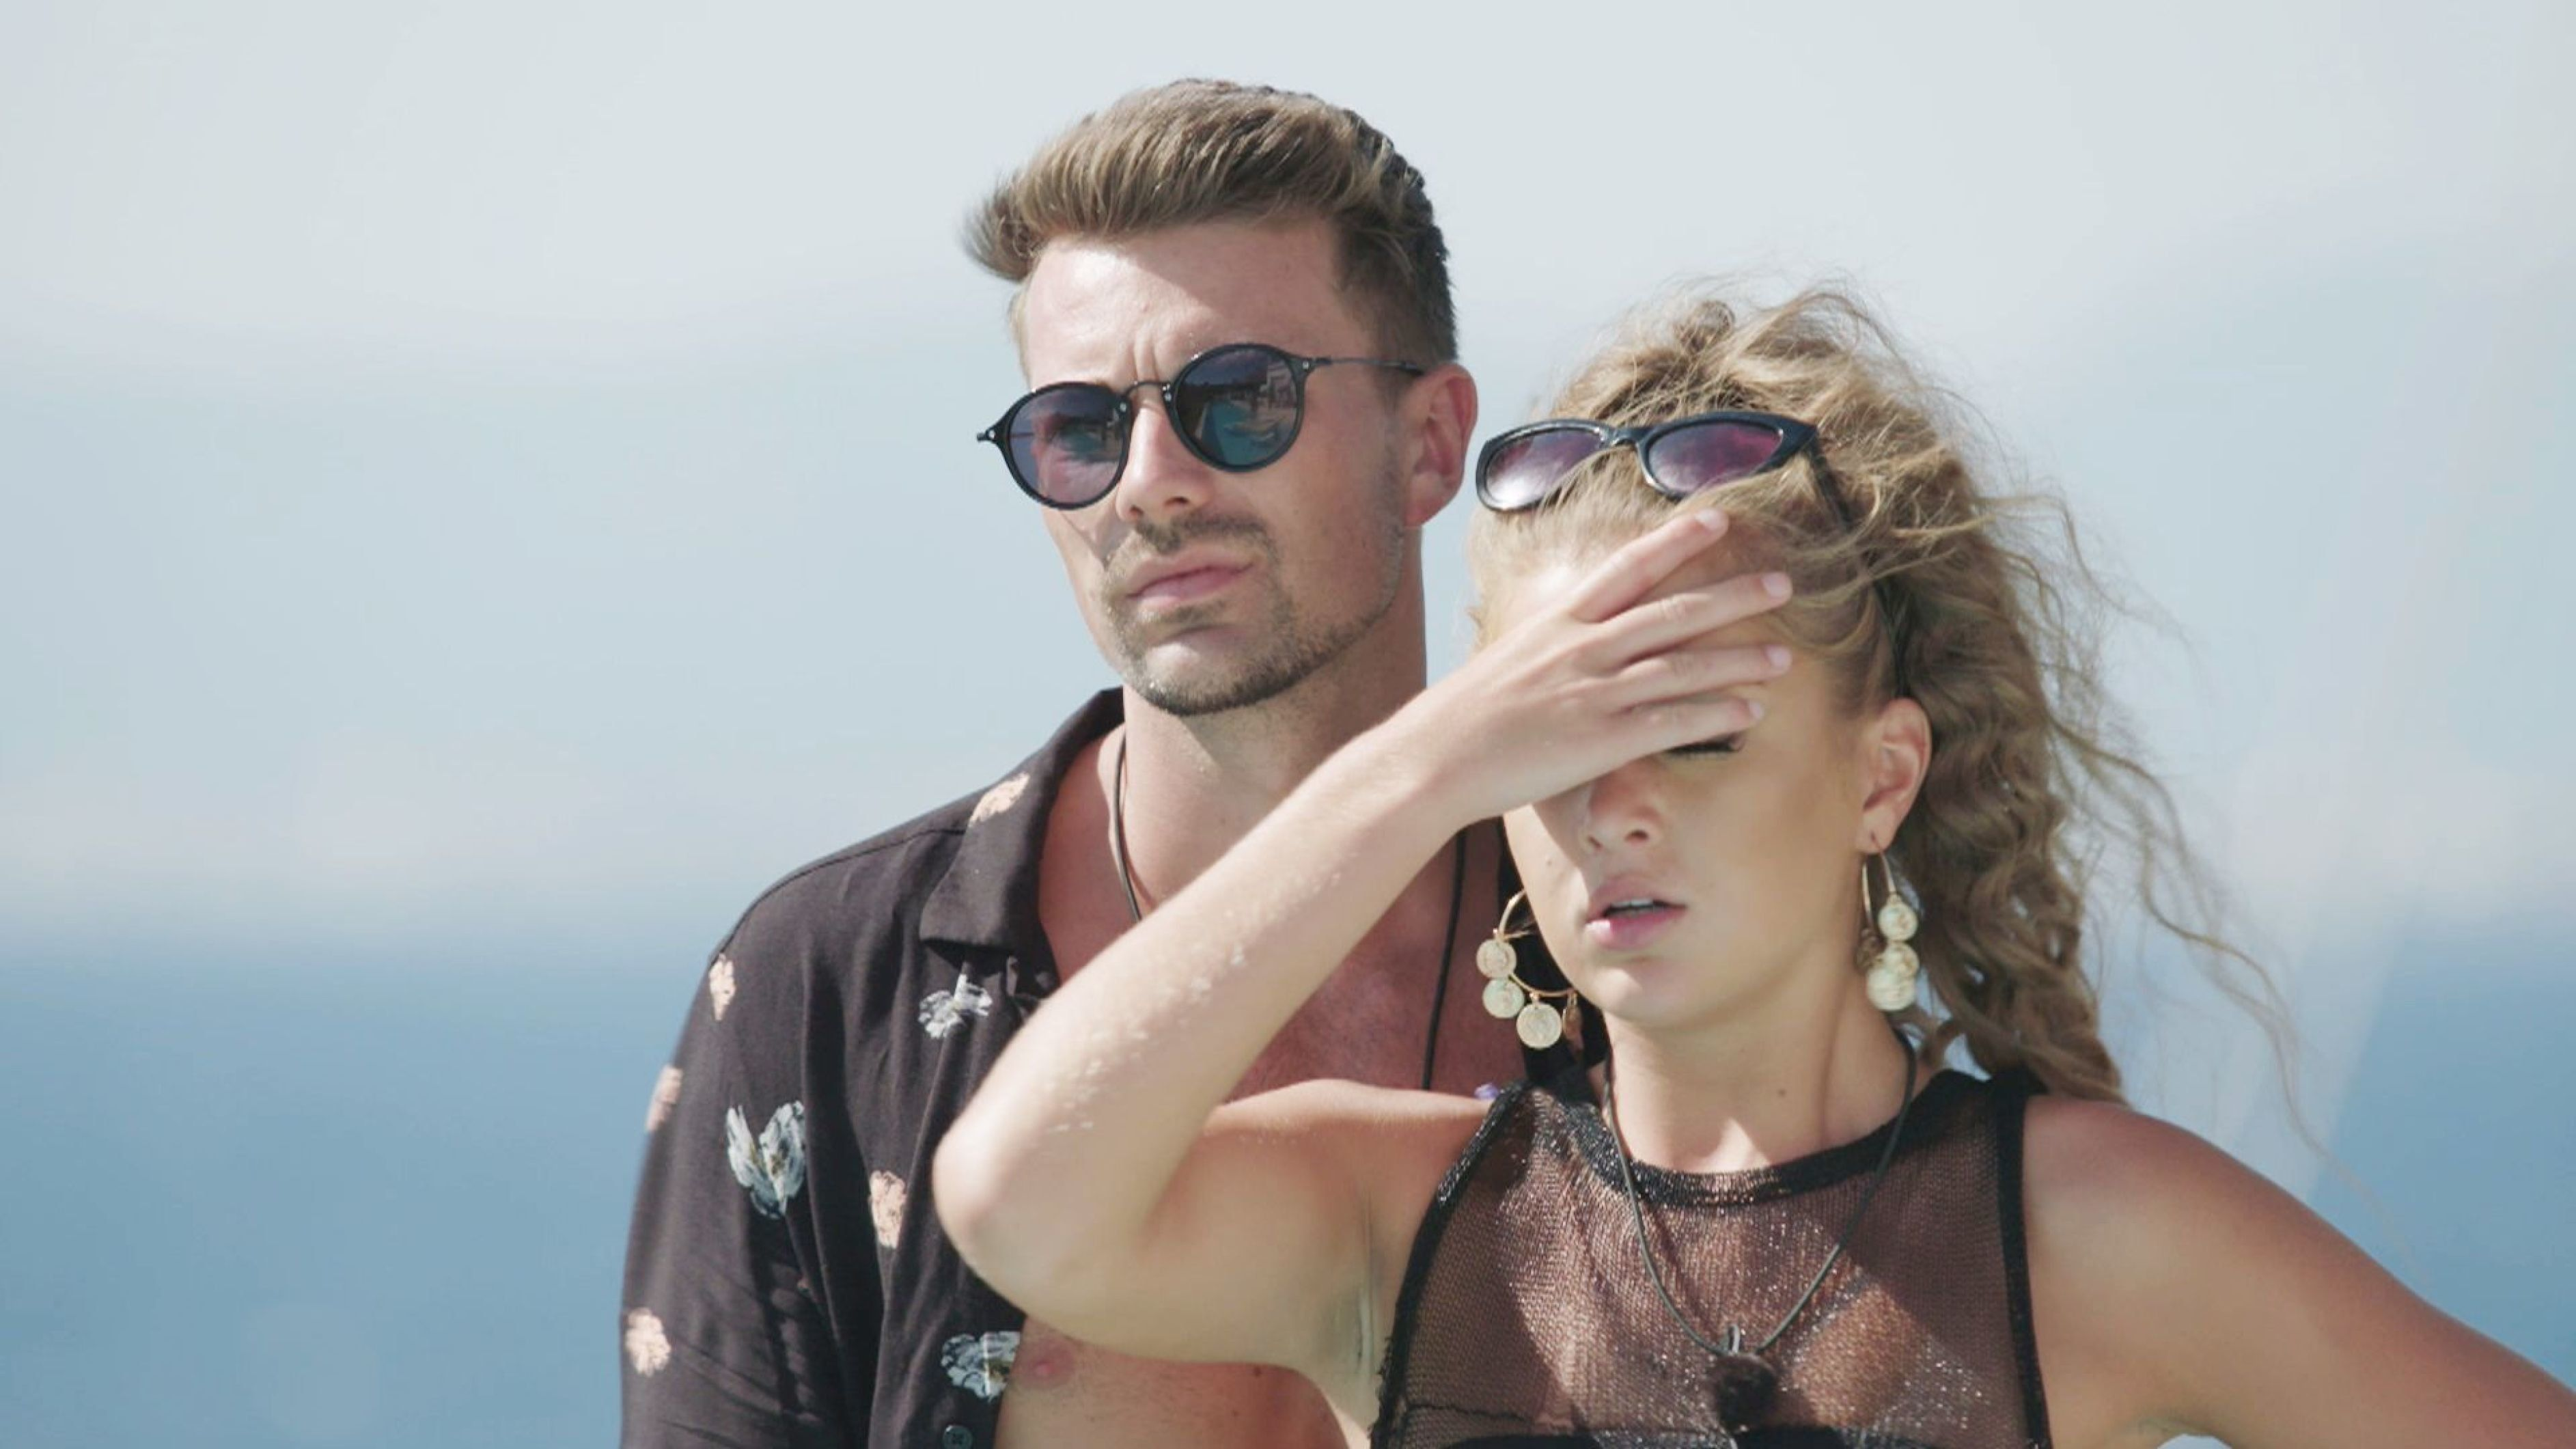 'Love Island' Viewers Had The Best Reactions To The Georgia 'Loyal' Steel And Sam Bird